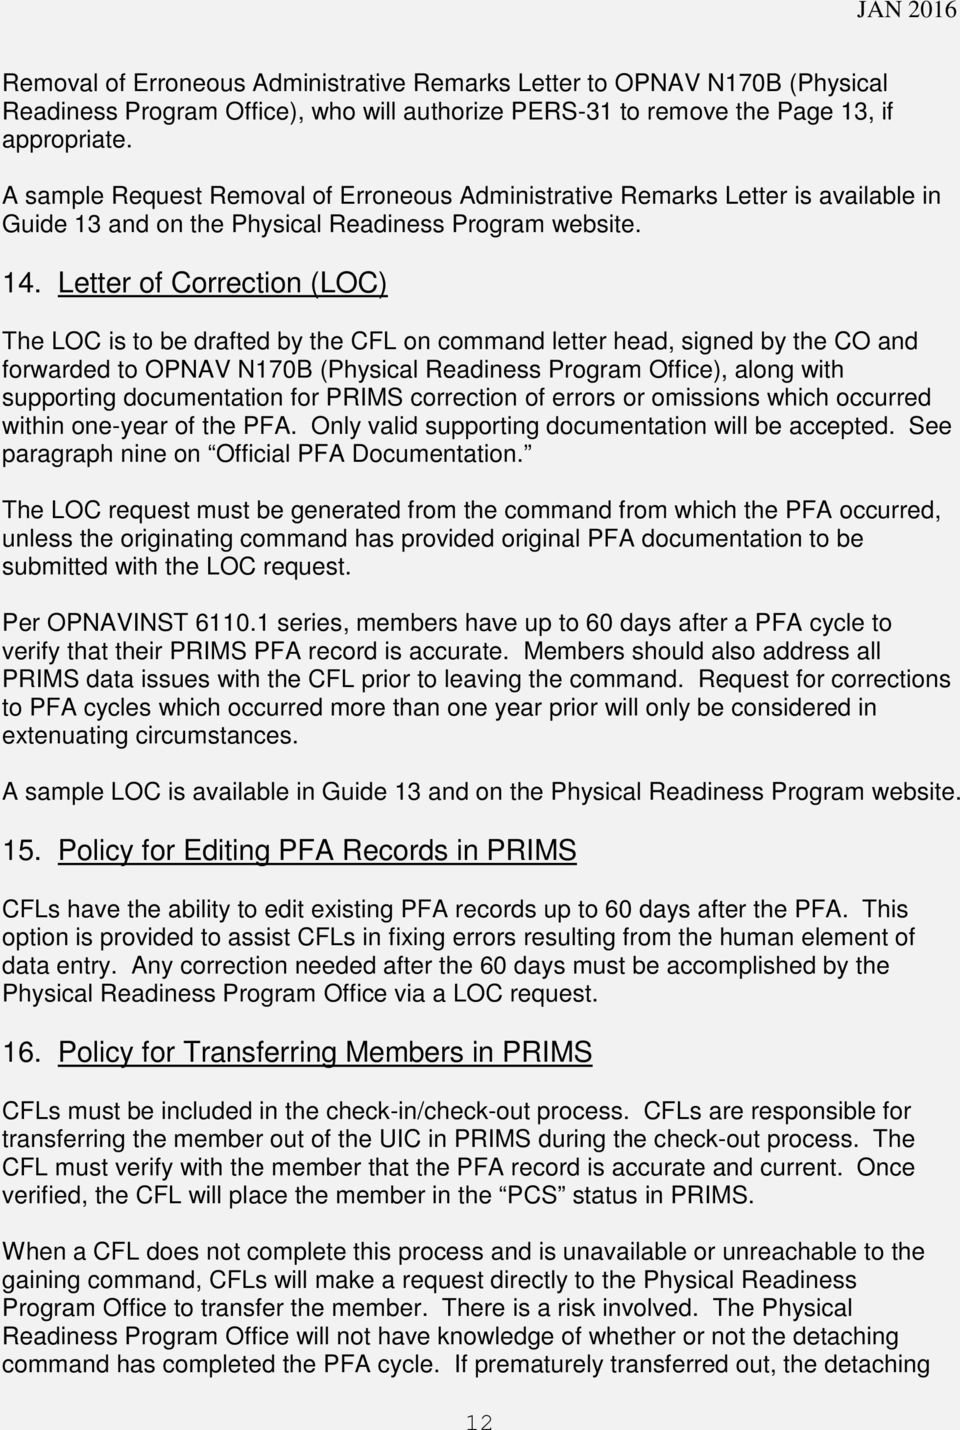 Letter of Correction (LOC) The LOC is to be drafted by the CFL on command letter head, signed by the CO and forwarded to OPNAV N170B (Physical Readiness Program Office), along with supporting